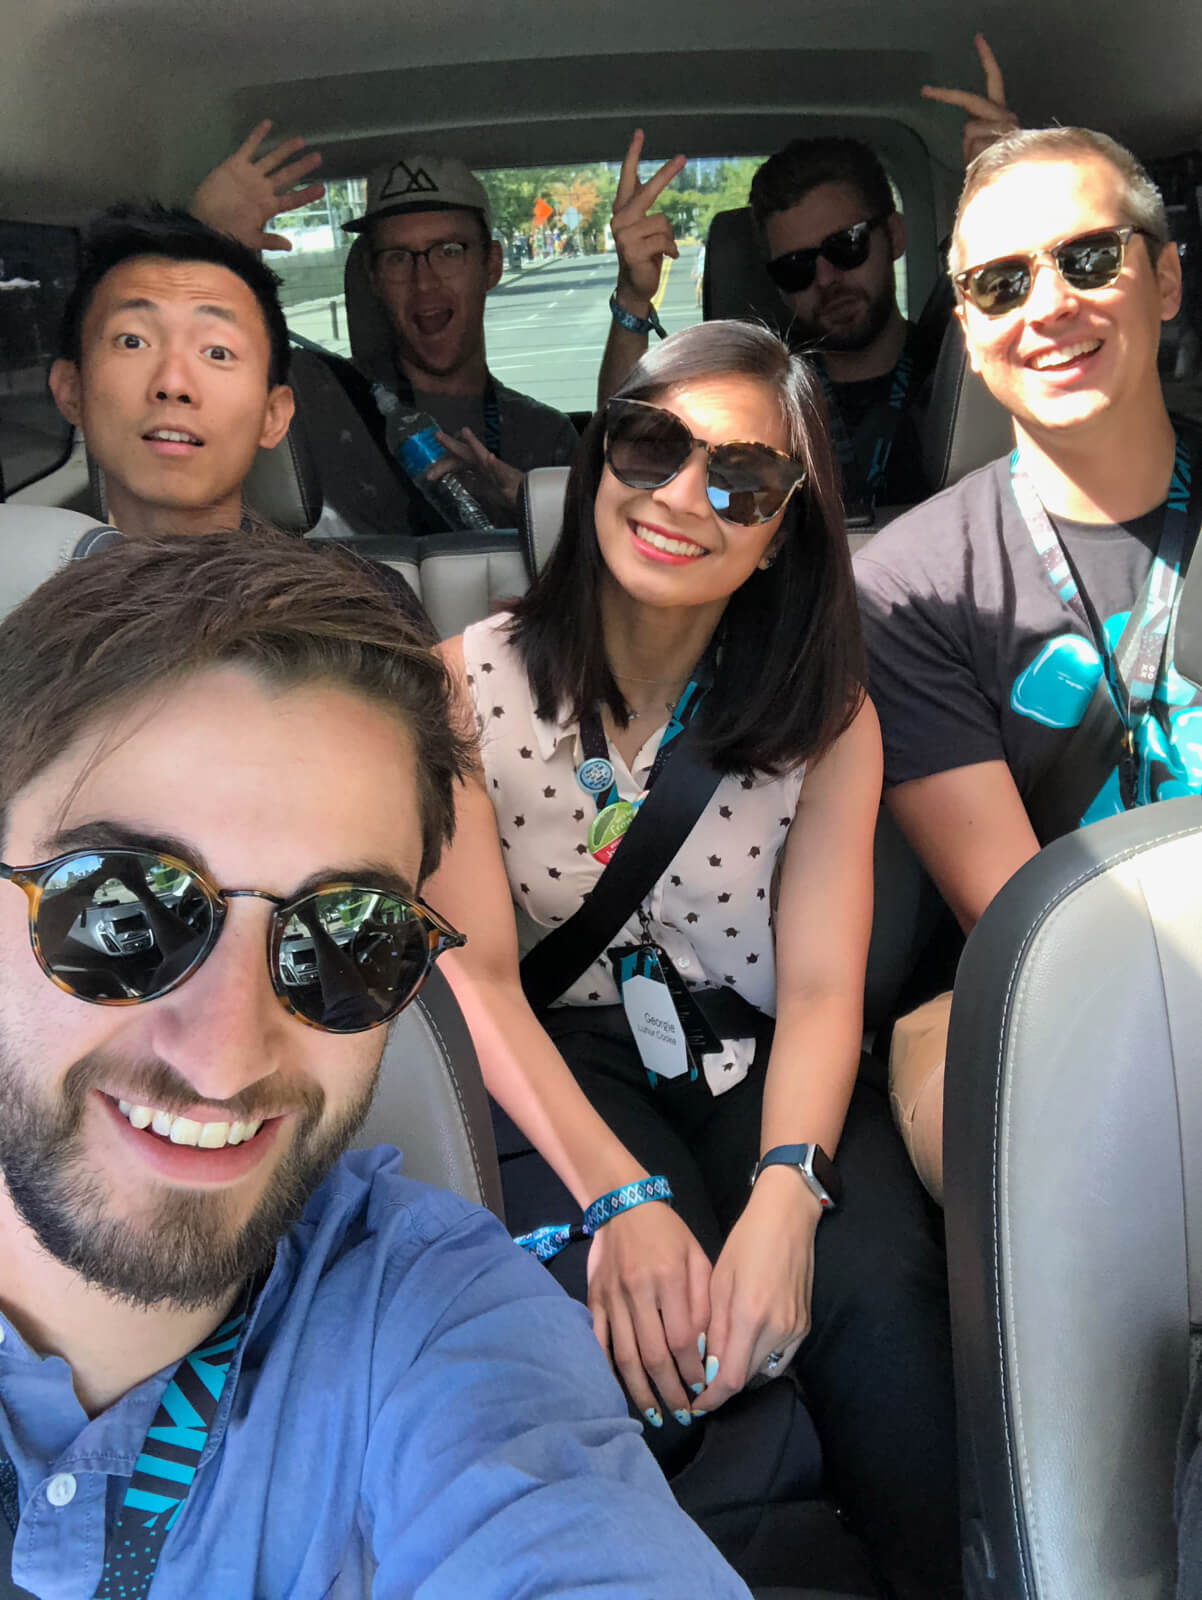 A selfie taken in a car, taken by the man in the passenger seat. There are three people in the second row and two people in the back of the car